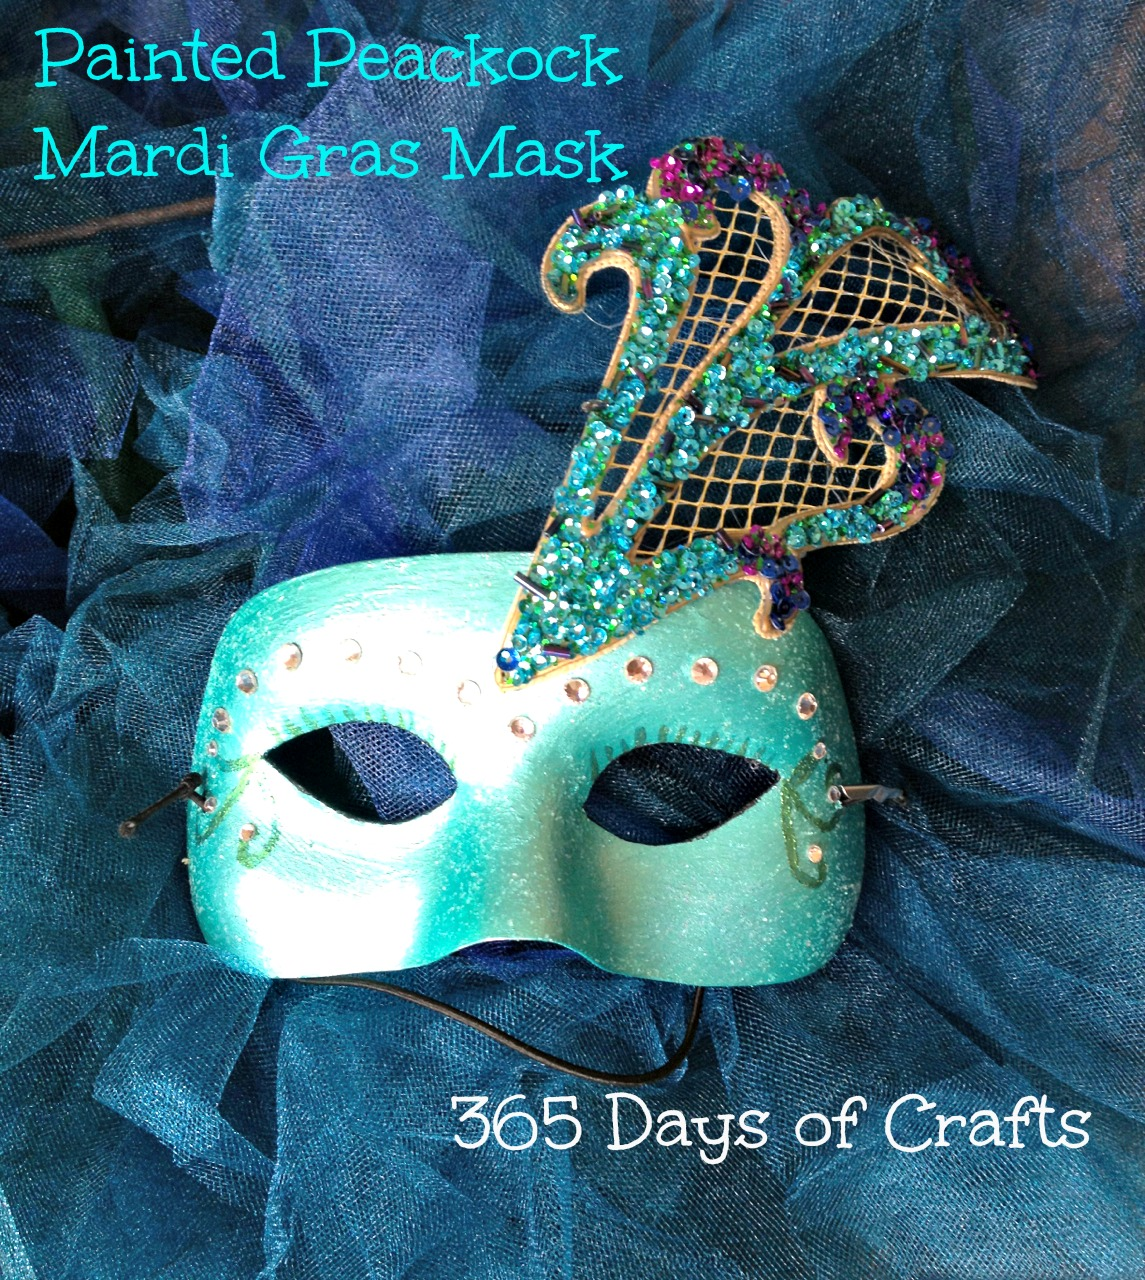 Peacock mardi gras mask 365 days of crafts inspiration for Mardi gras masks crafts